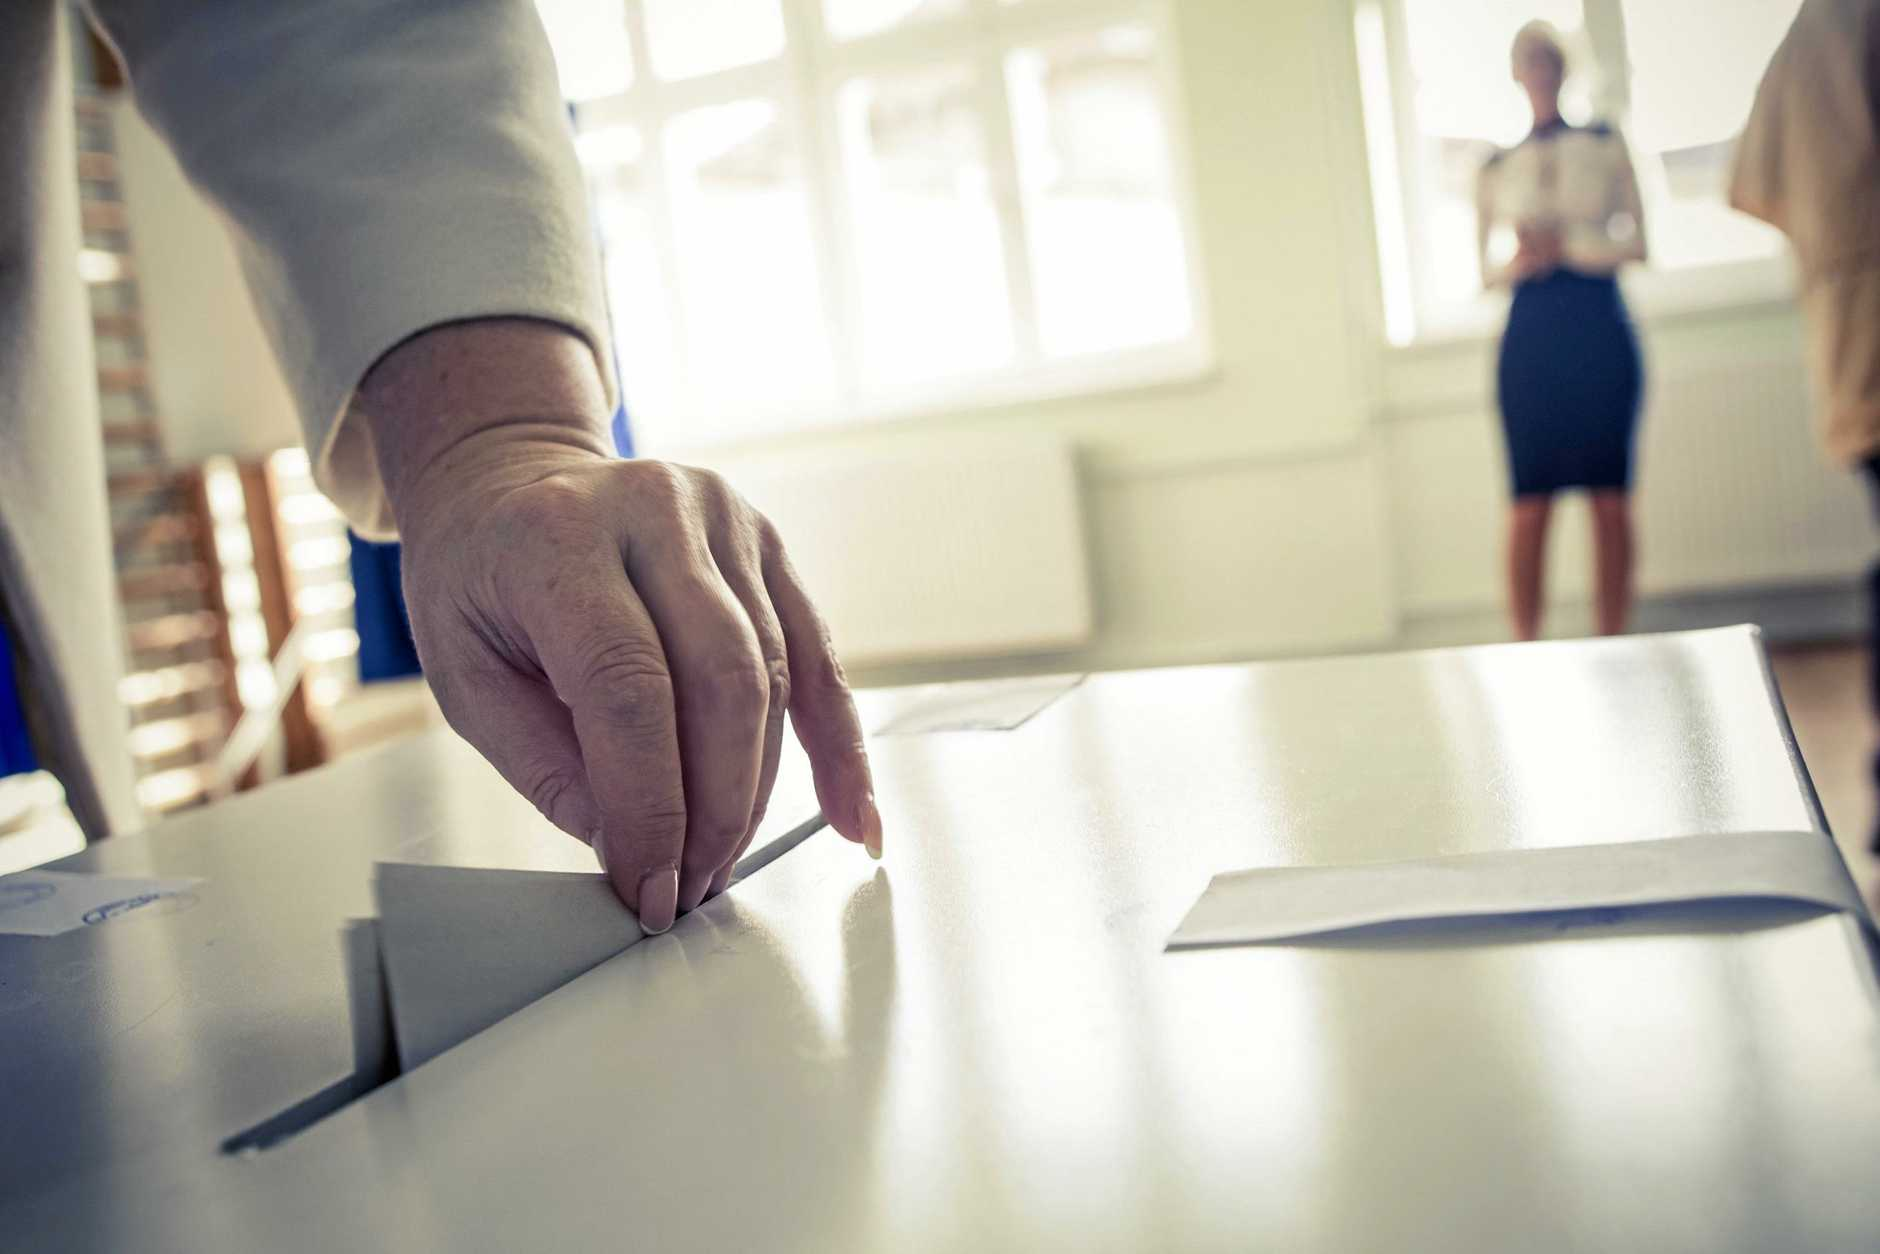 Casting a ballot at a polling station.